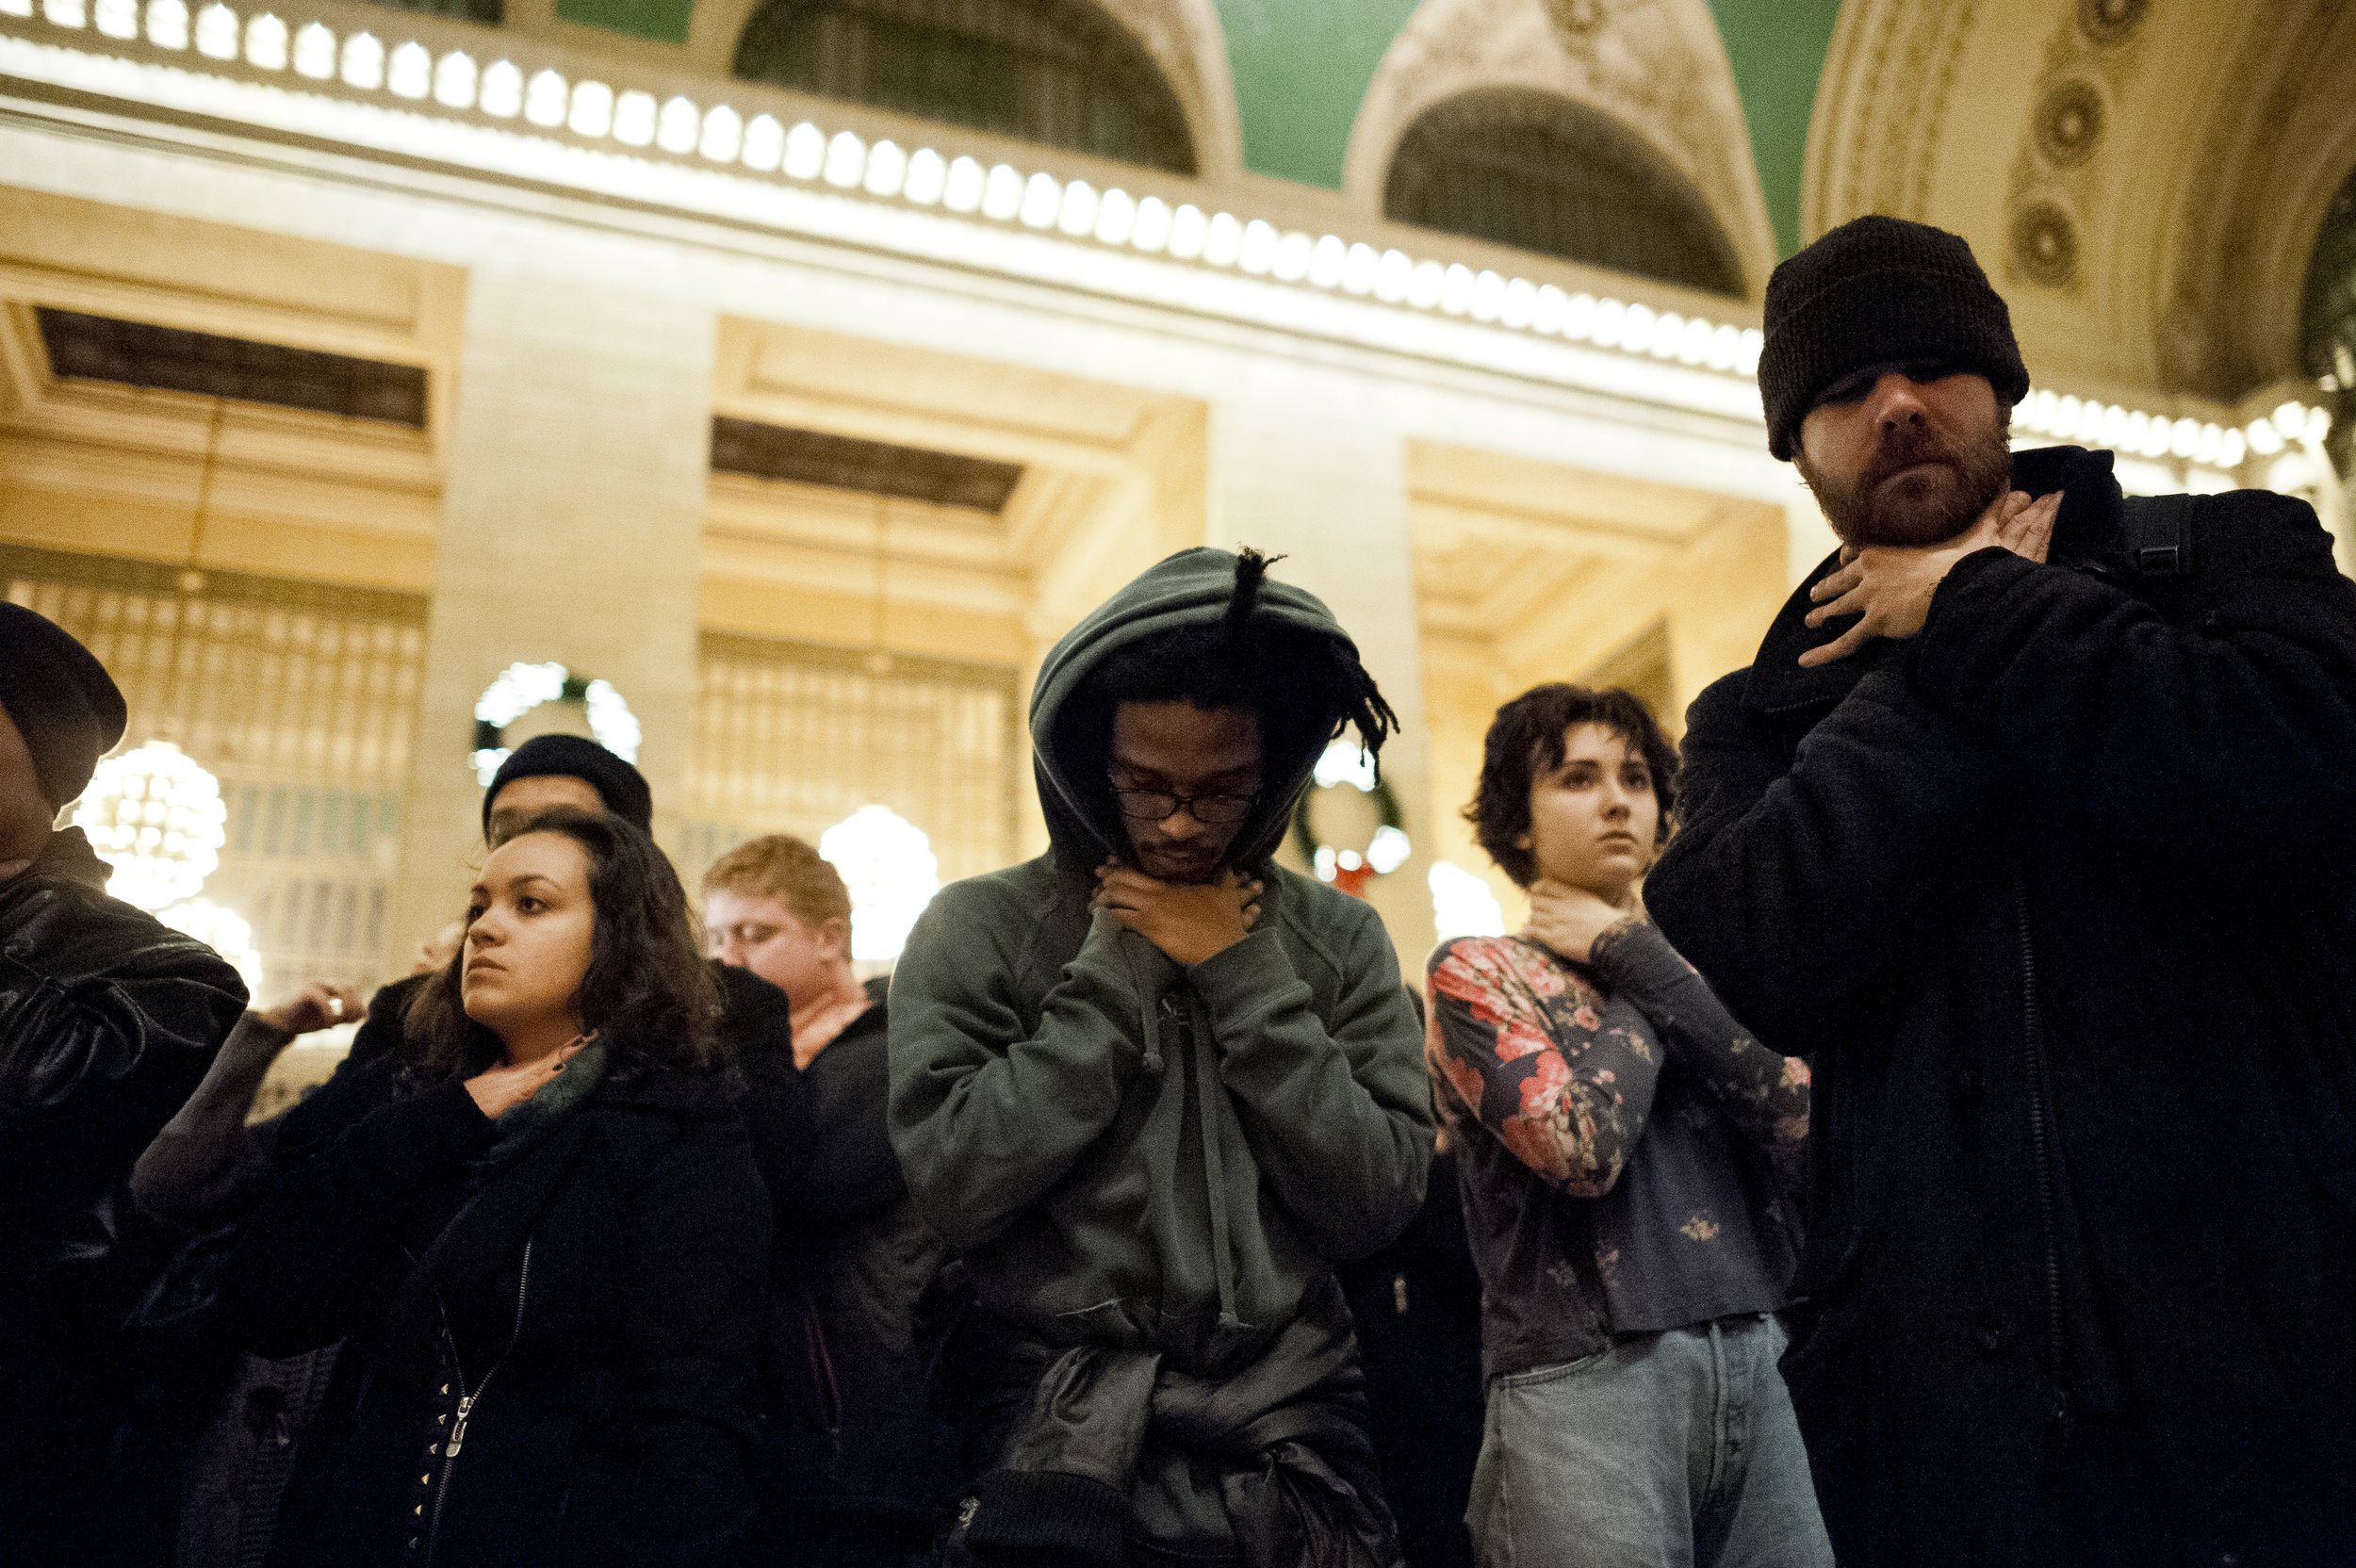 "Demonstrators re-enact the killing of Eric Garner, shouting ""I Can't Breathe!"" in the main atrium of Grand Central Station on December 6th, 2014. Weeks of protest followed a Staten Island grand jury's decision on December 3rd 2014 not to indict Officer Daniel Pantaleo in Garner's killing."